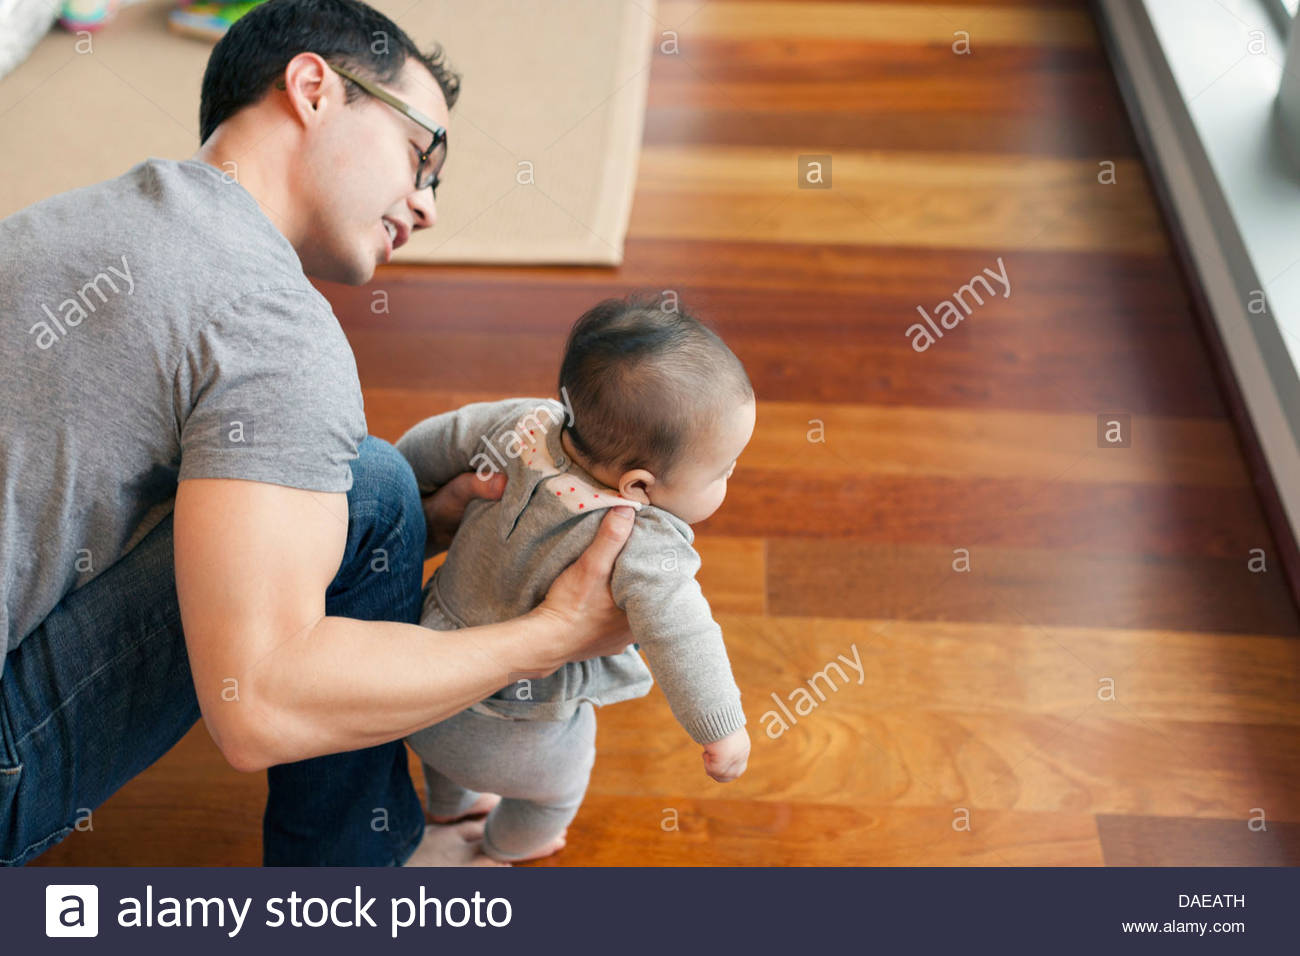 Father supporting baby girl to walk - Stock Image